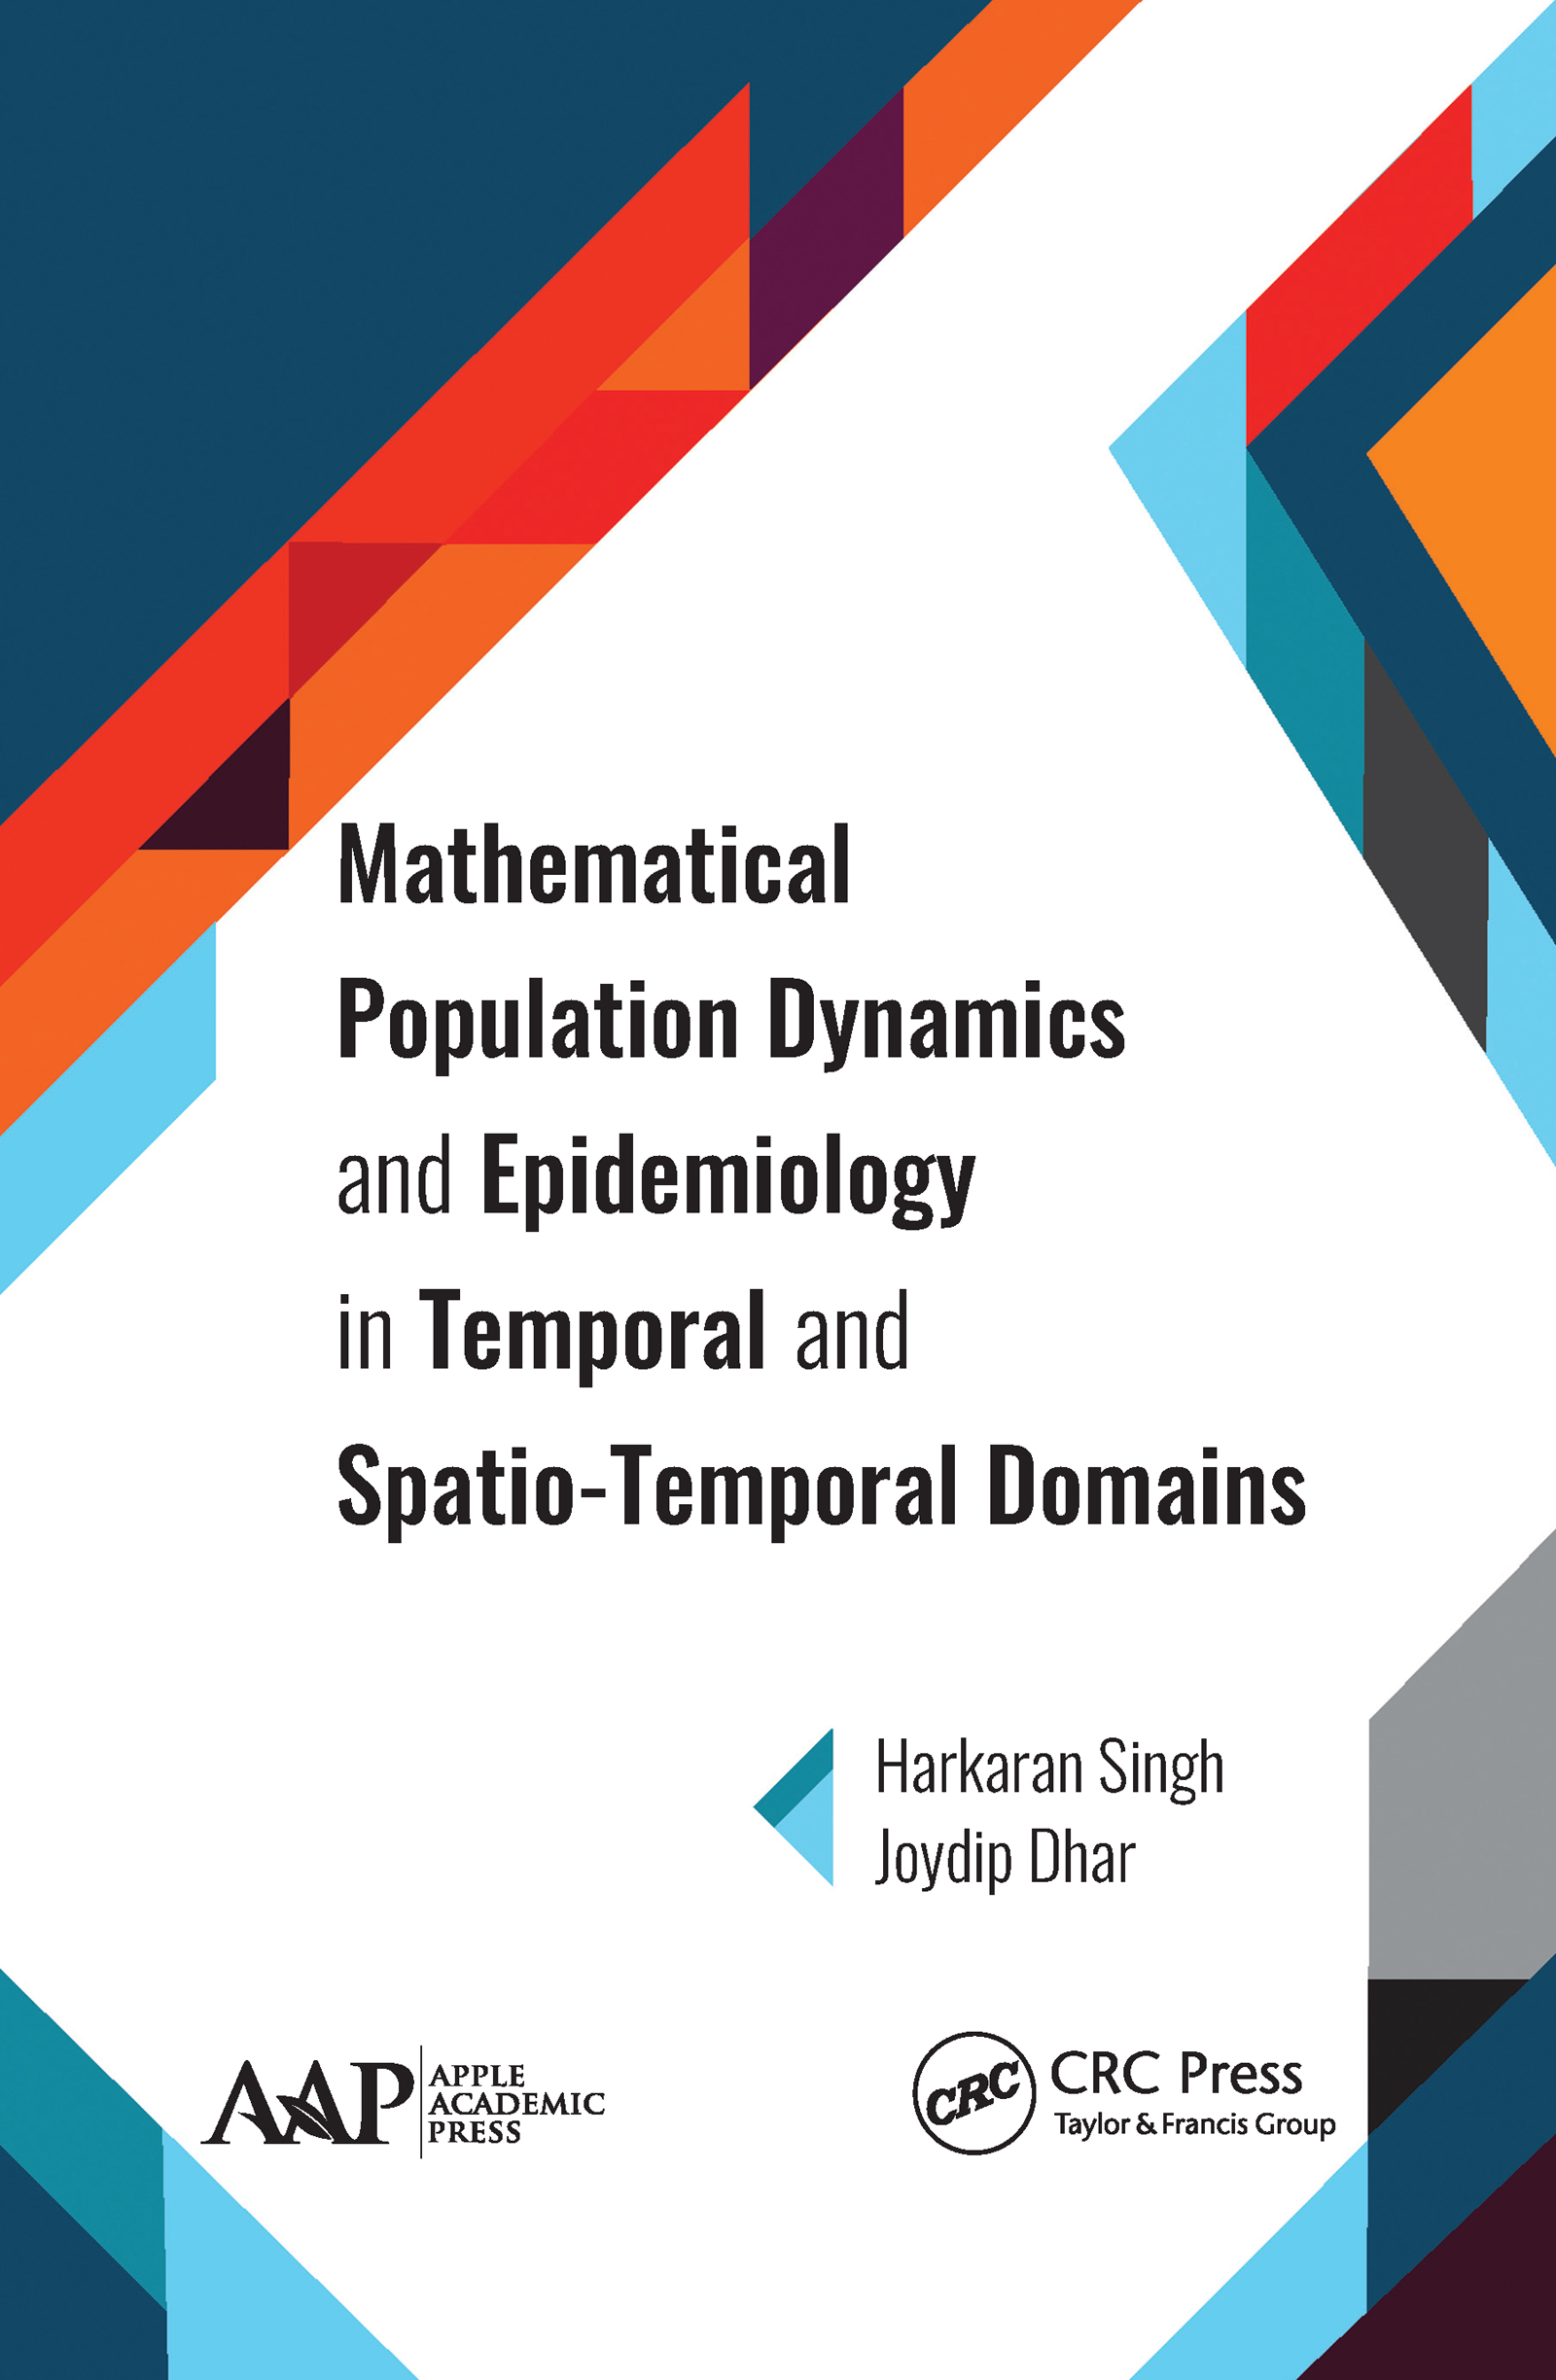 Mathematical Population Dynamics and Epidemiology in Temporal and Spatio-Temporal Domains